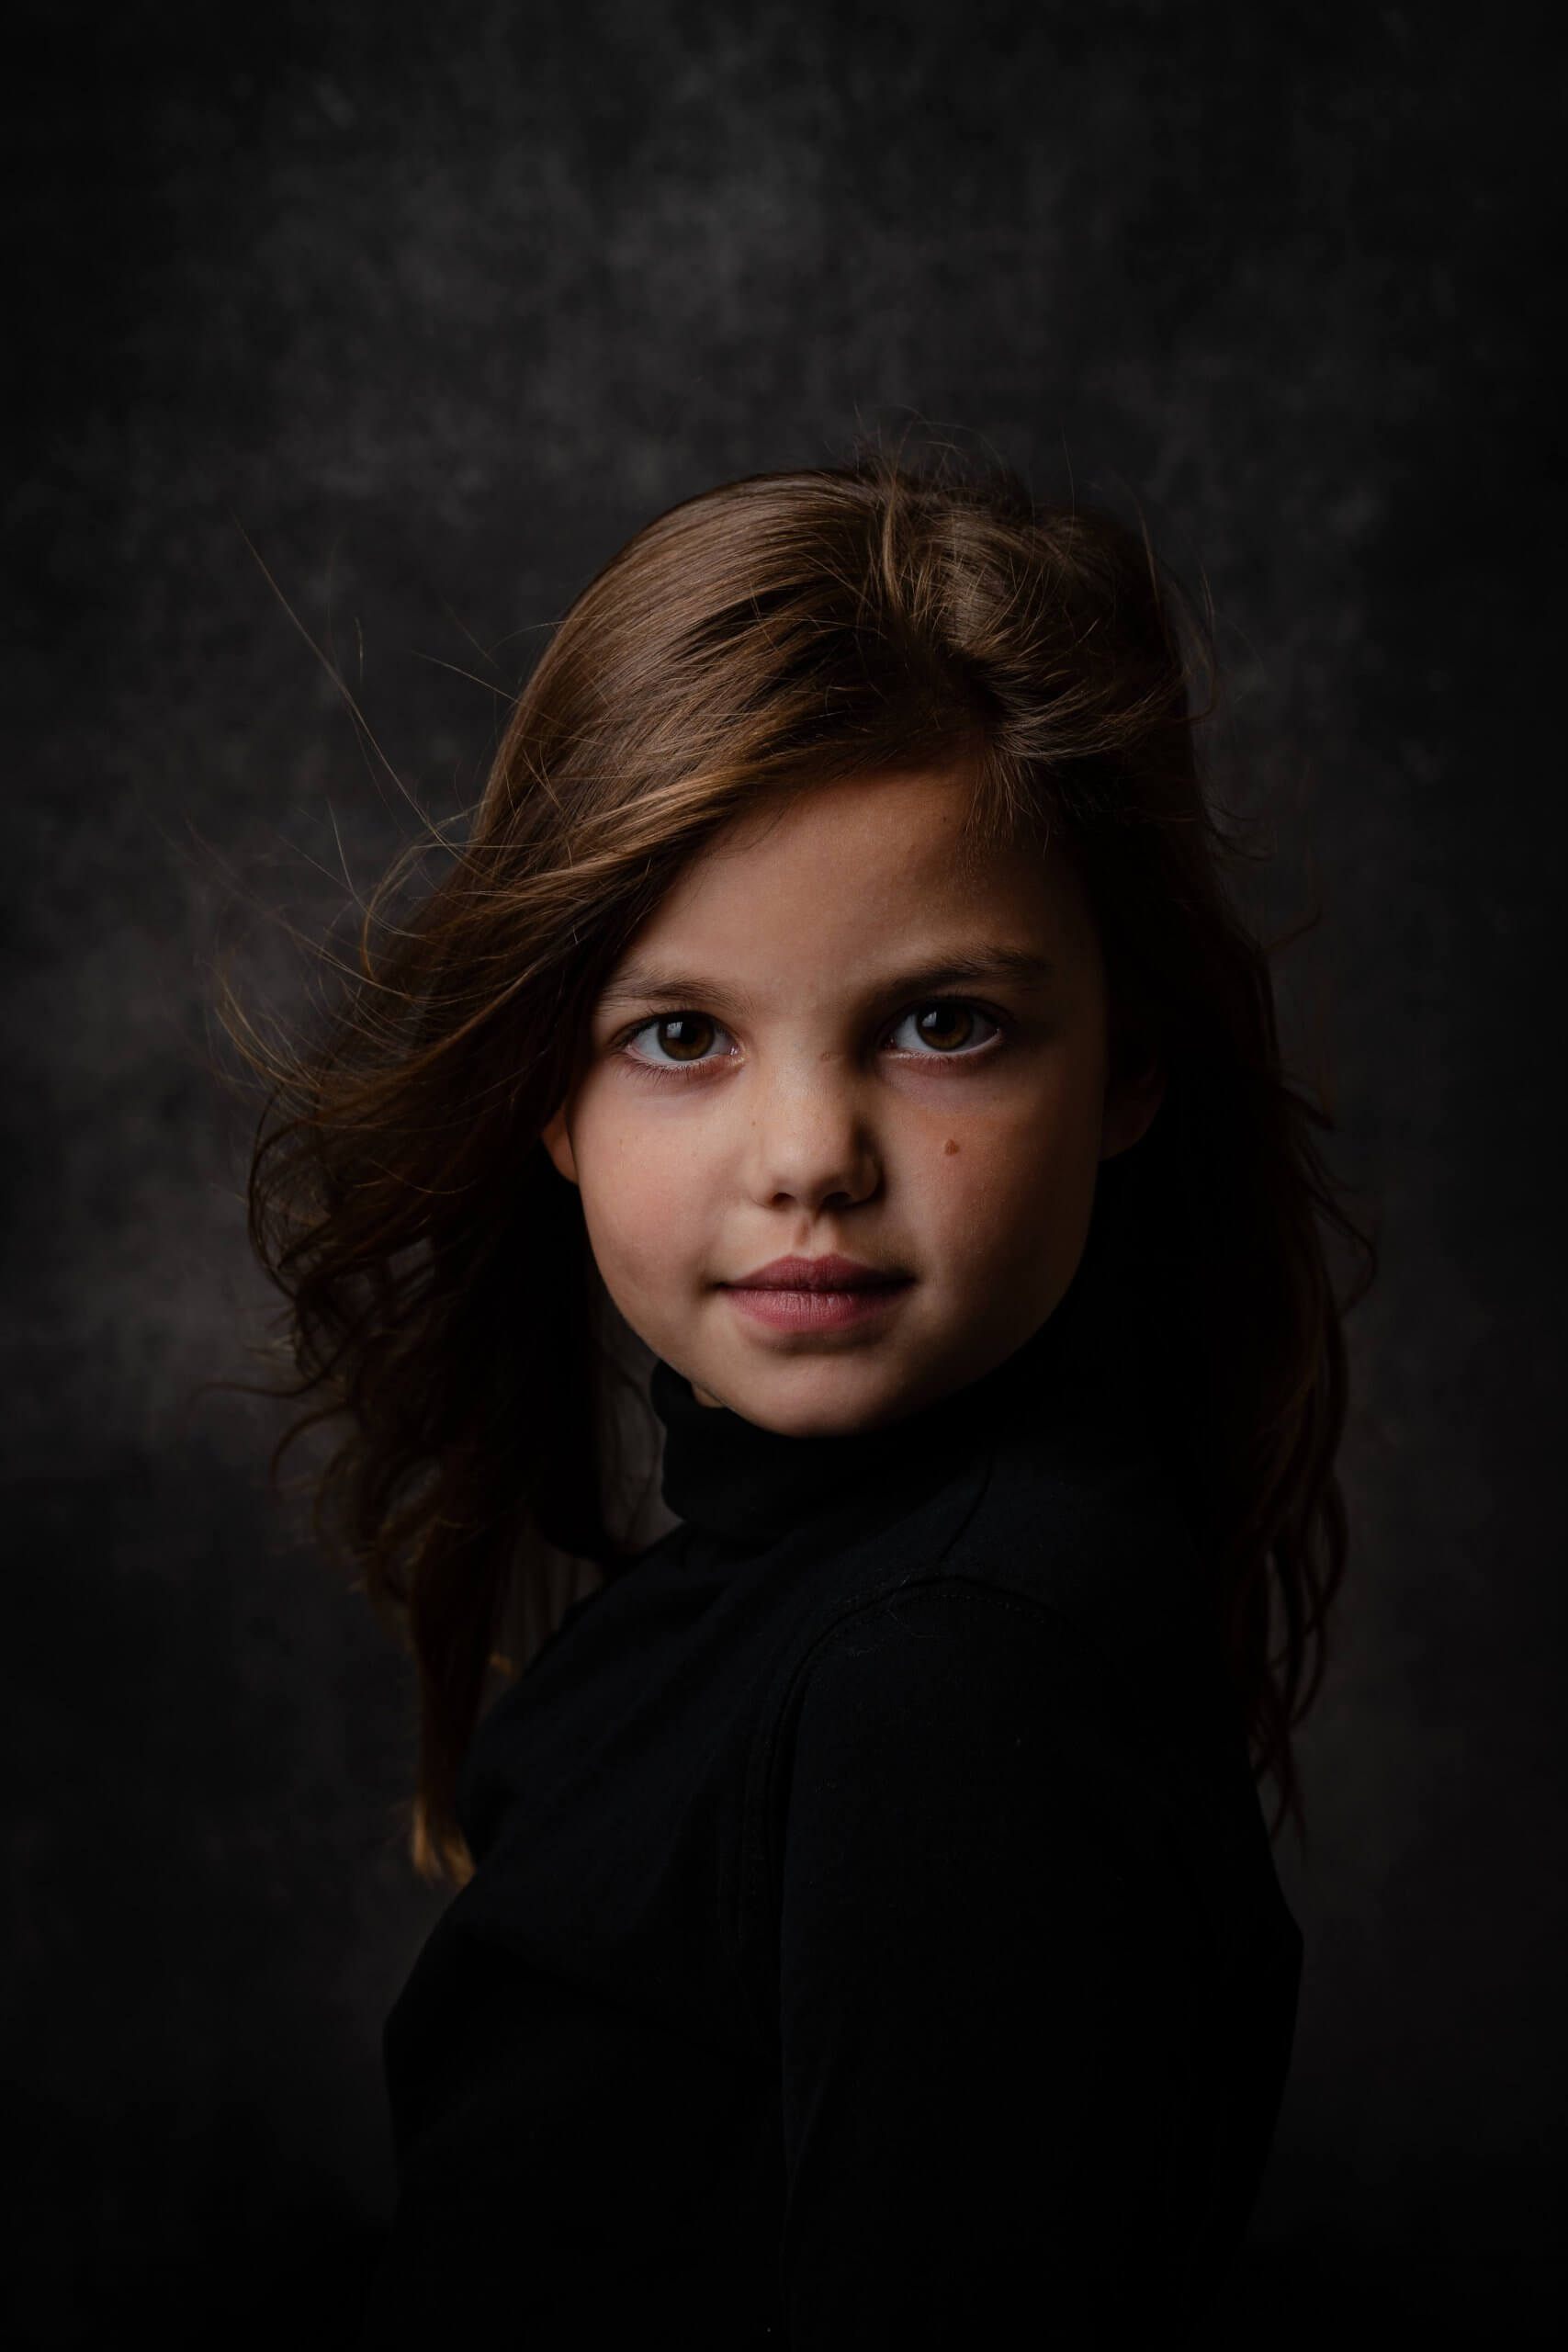 Portret kind meisje fine art studio rembrandt licht lights softbox fotoachtergronden